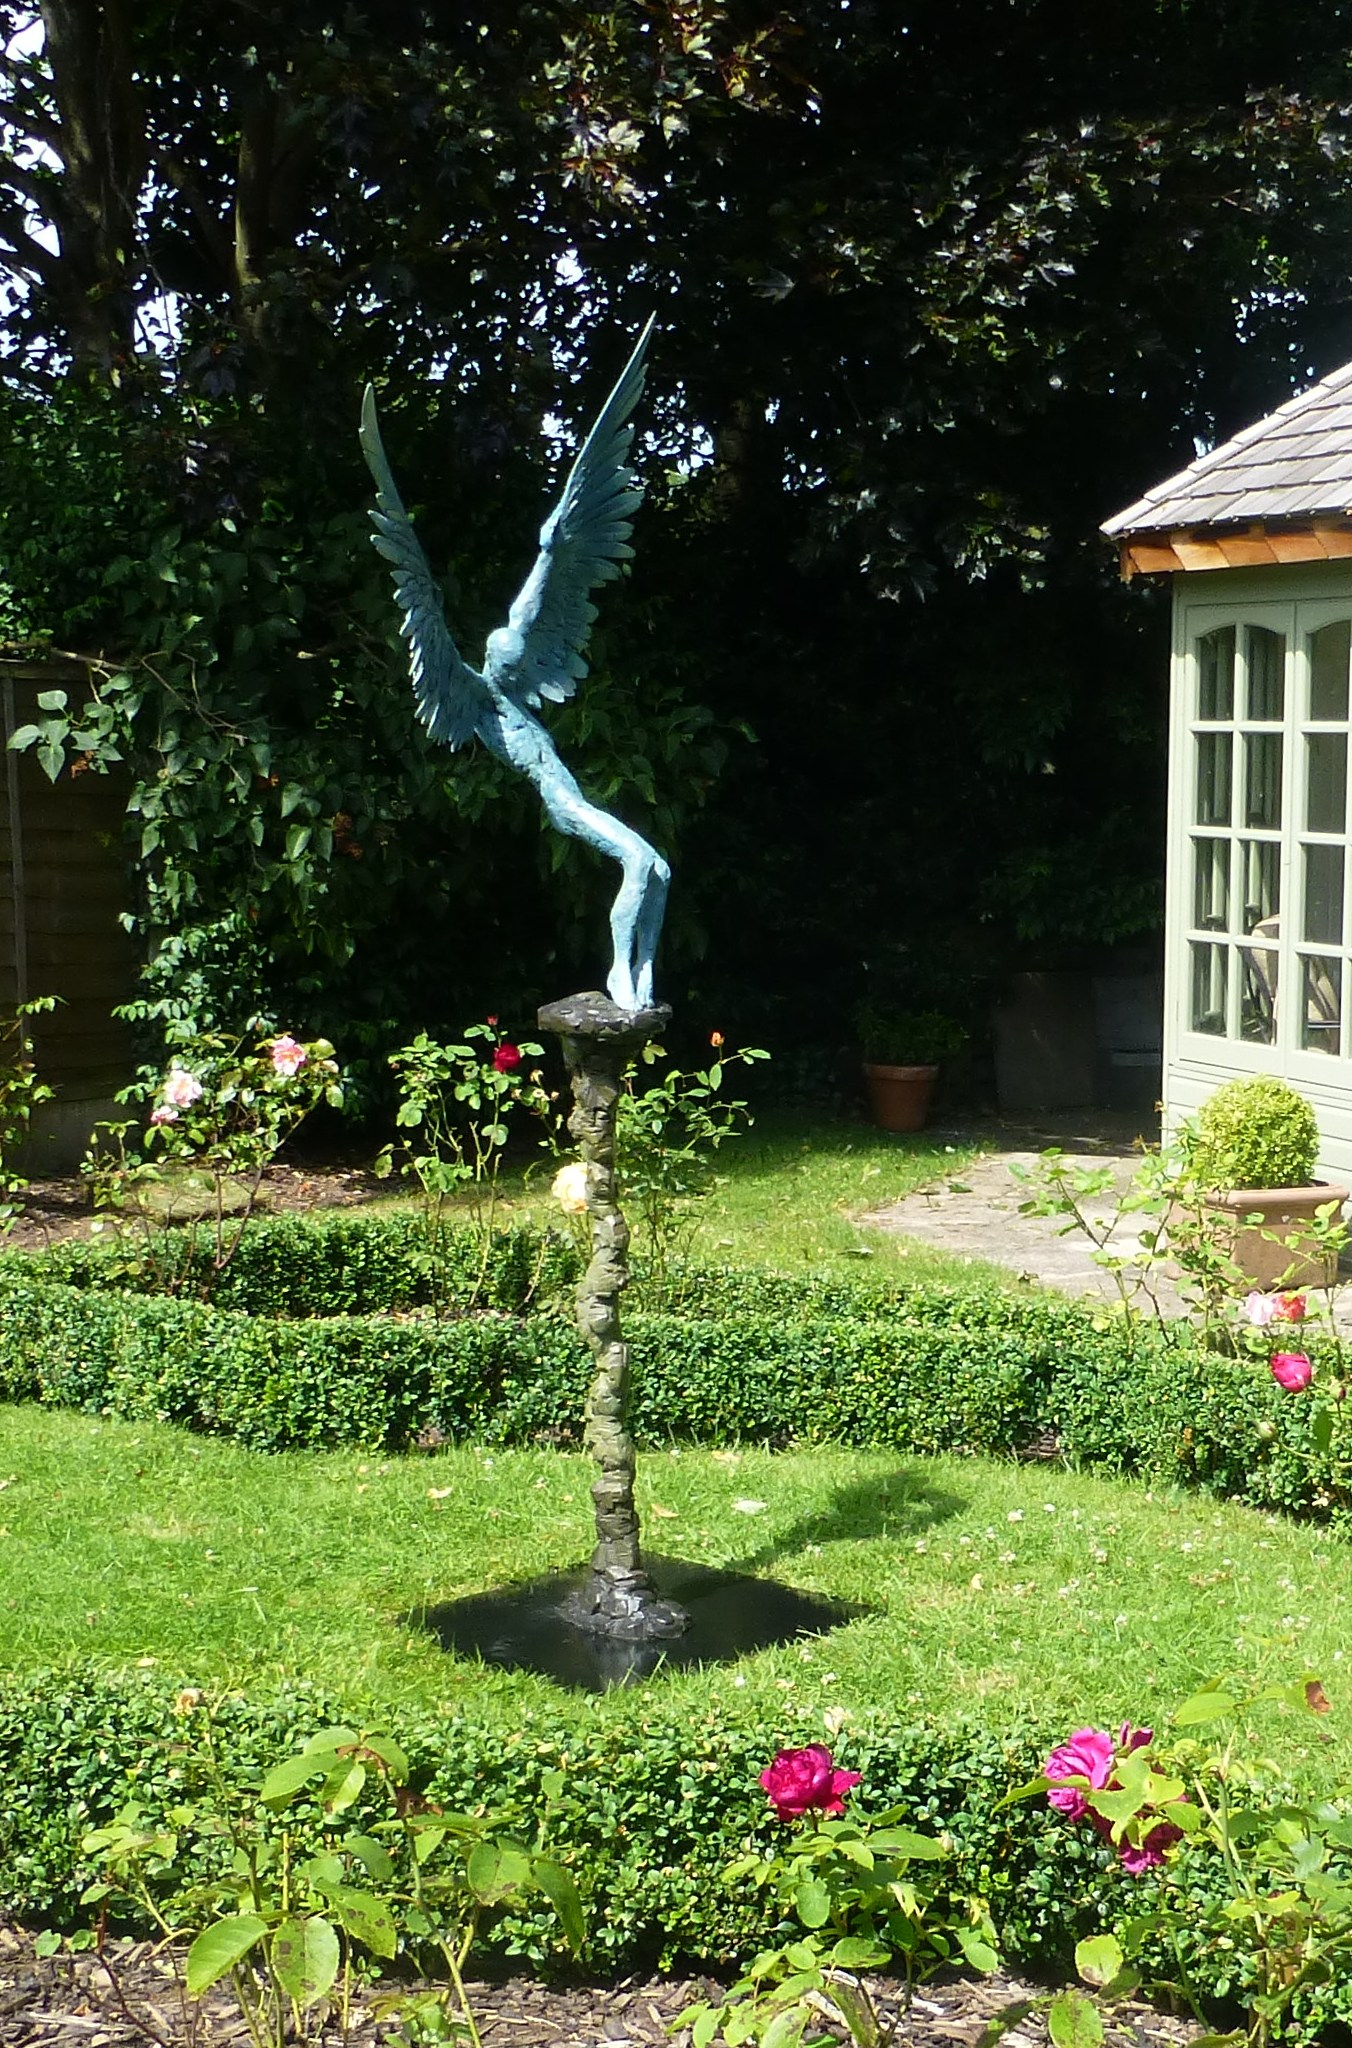 Bronze sculpture of mythological figure Icarus Falling, in garden setting.